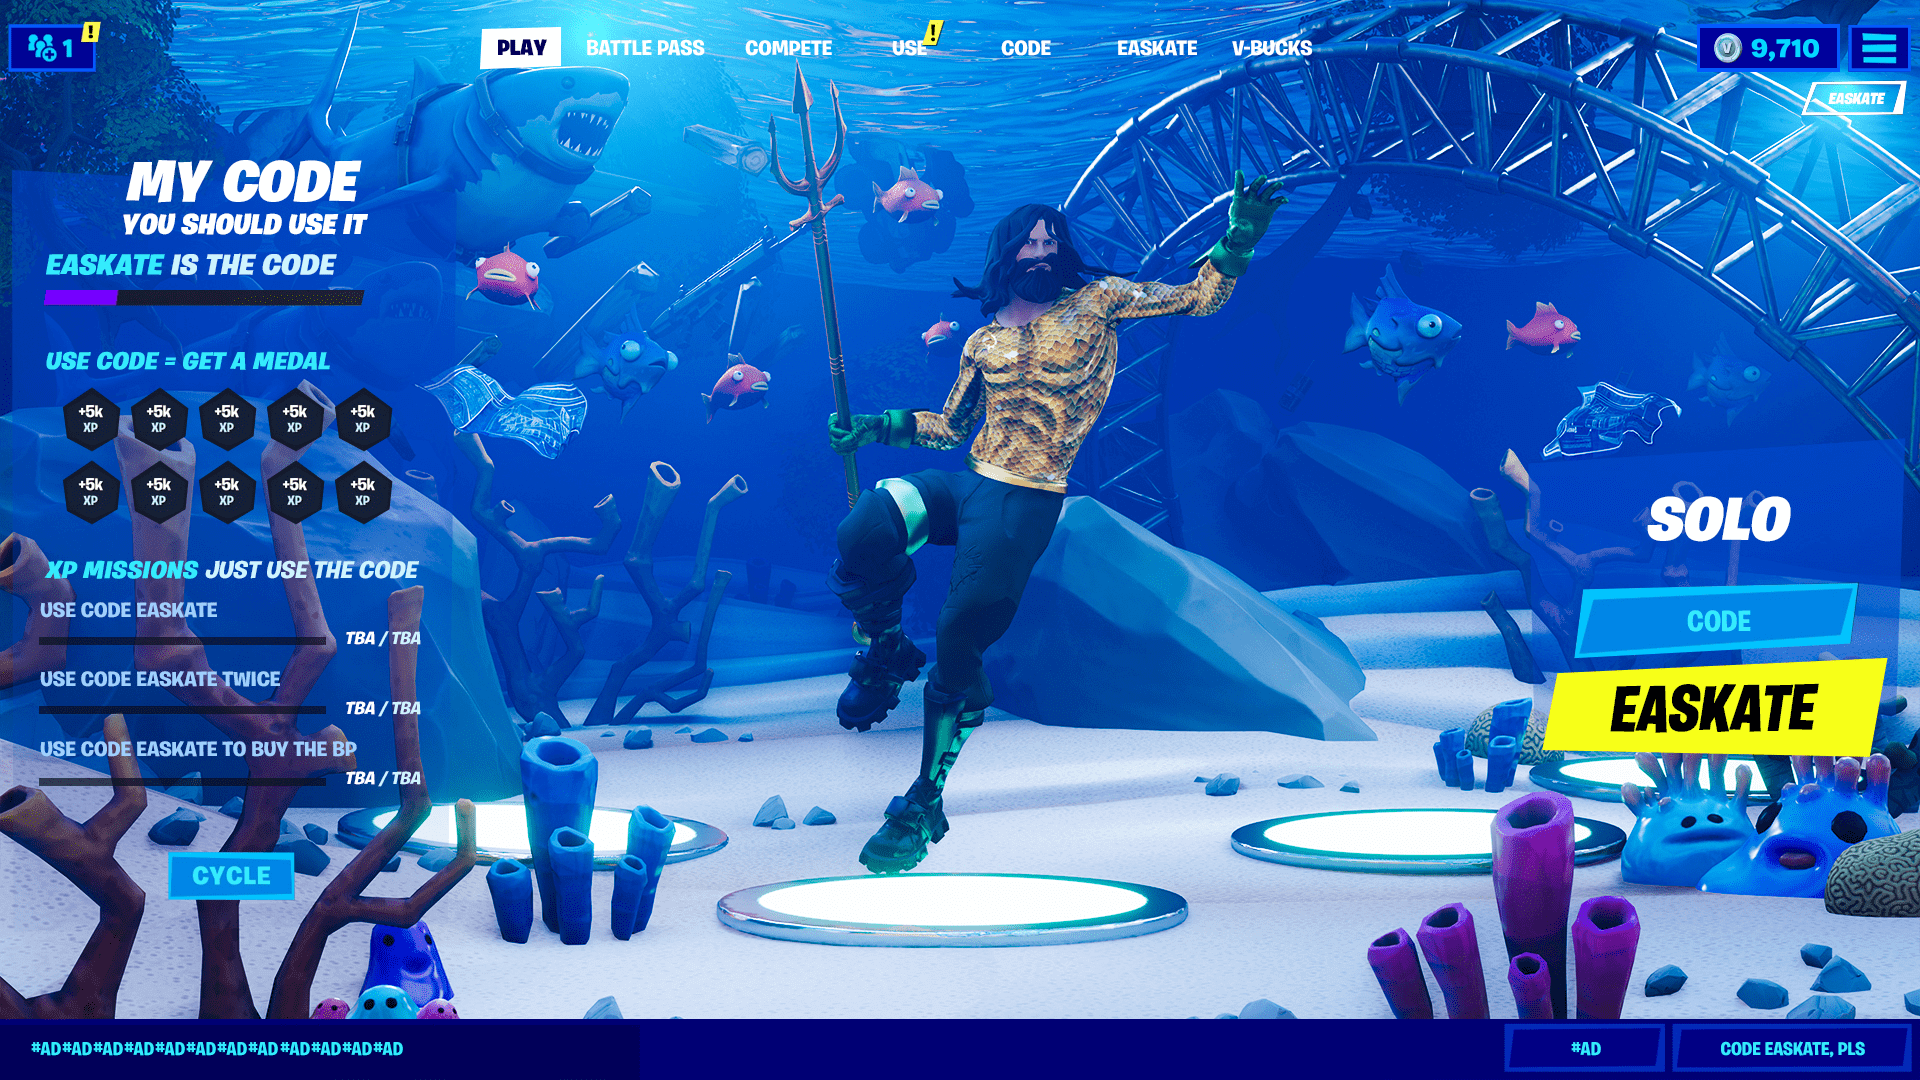 Fortnite Aquaman and lobby concept art by EASkate.